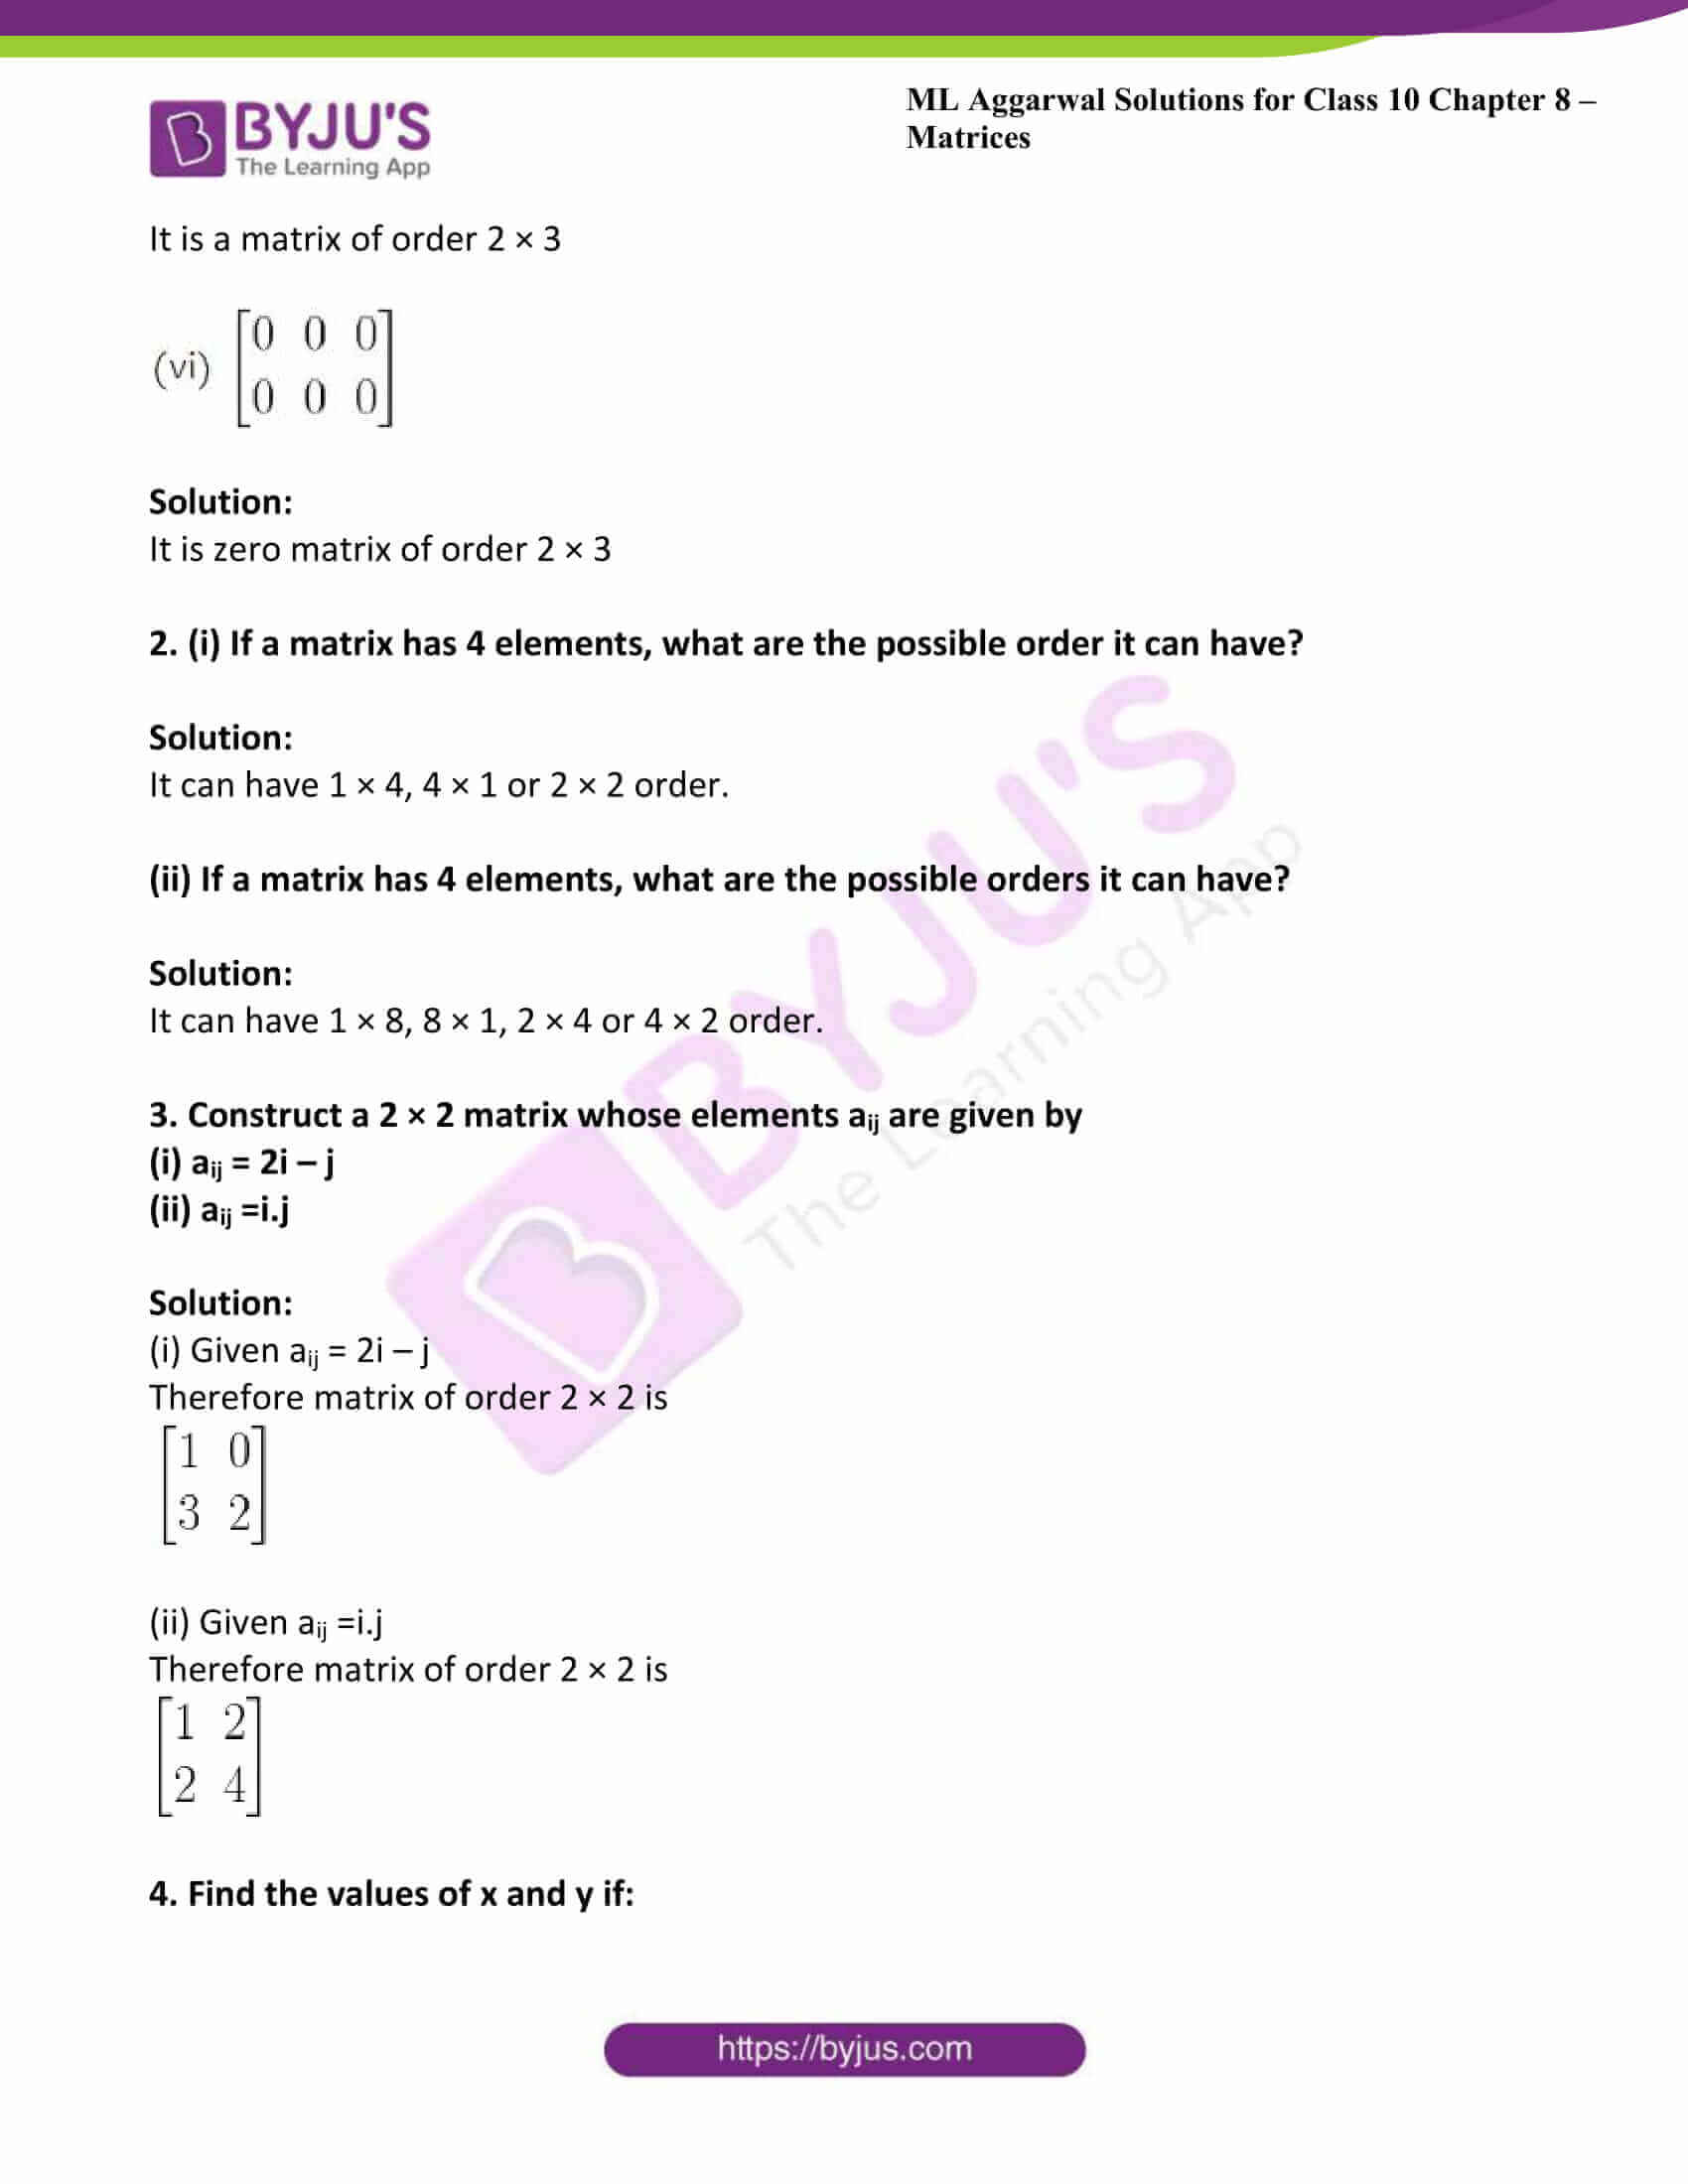 ml aggarwal solutions class 10 maths chapter 8 02